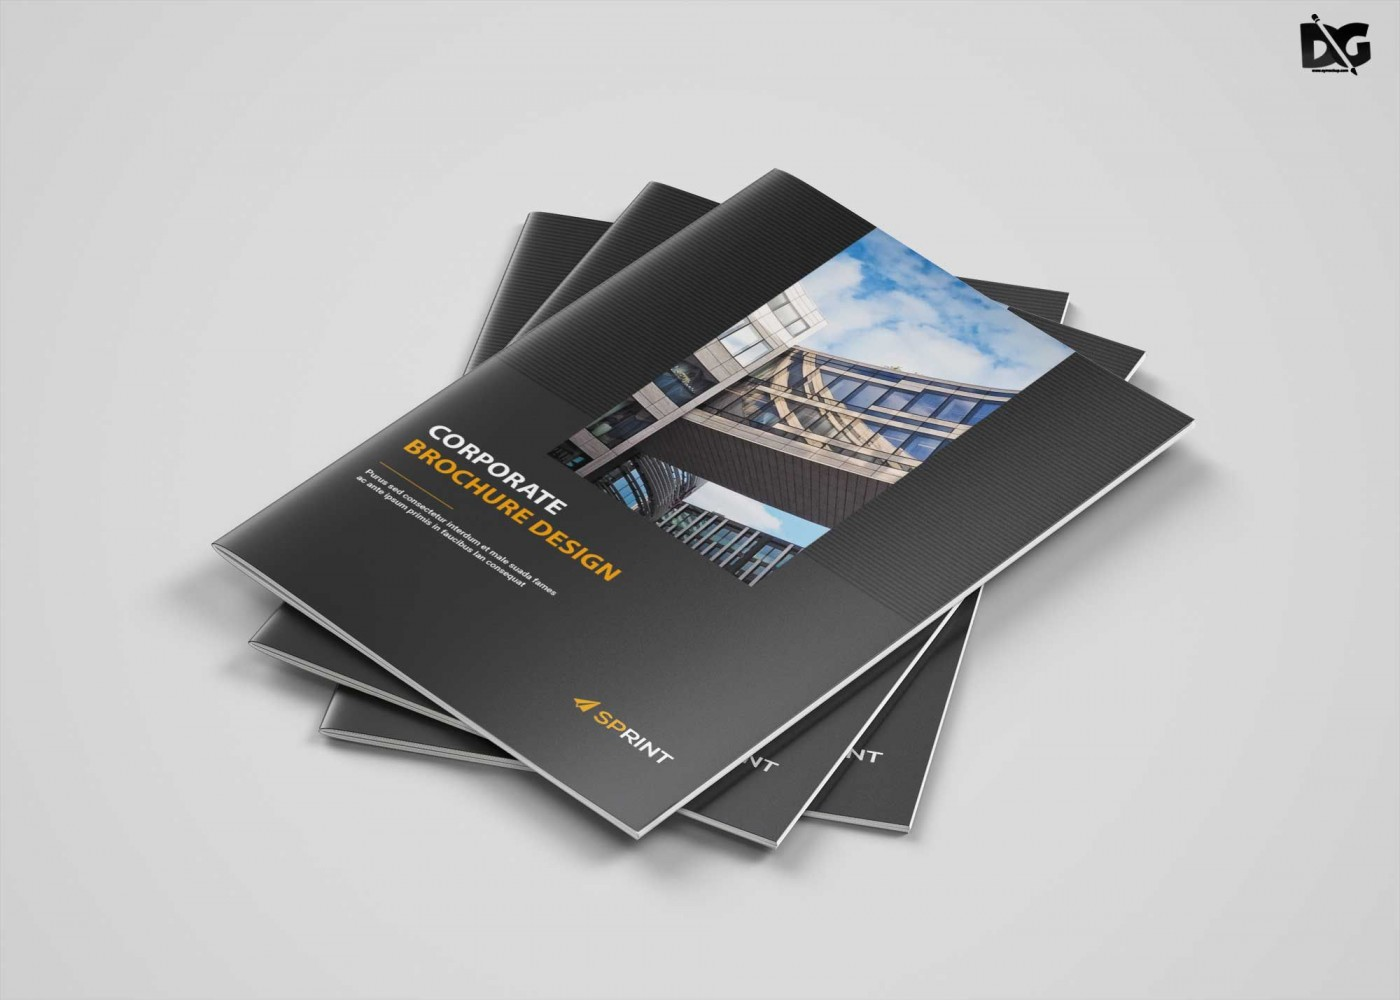 004 Awful Brochure Design Template Psd Free Download Inspiration  Hotel1400